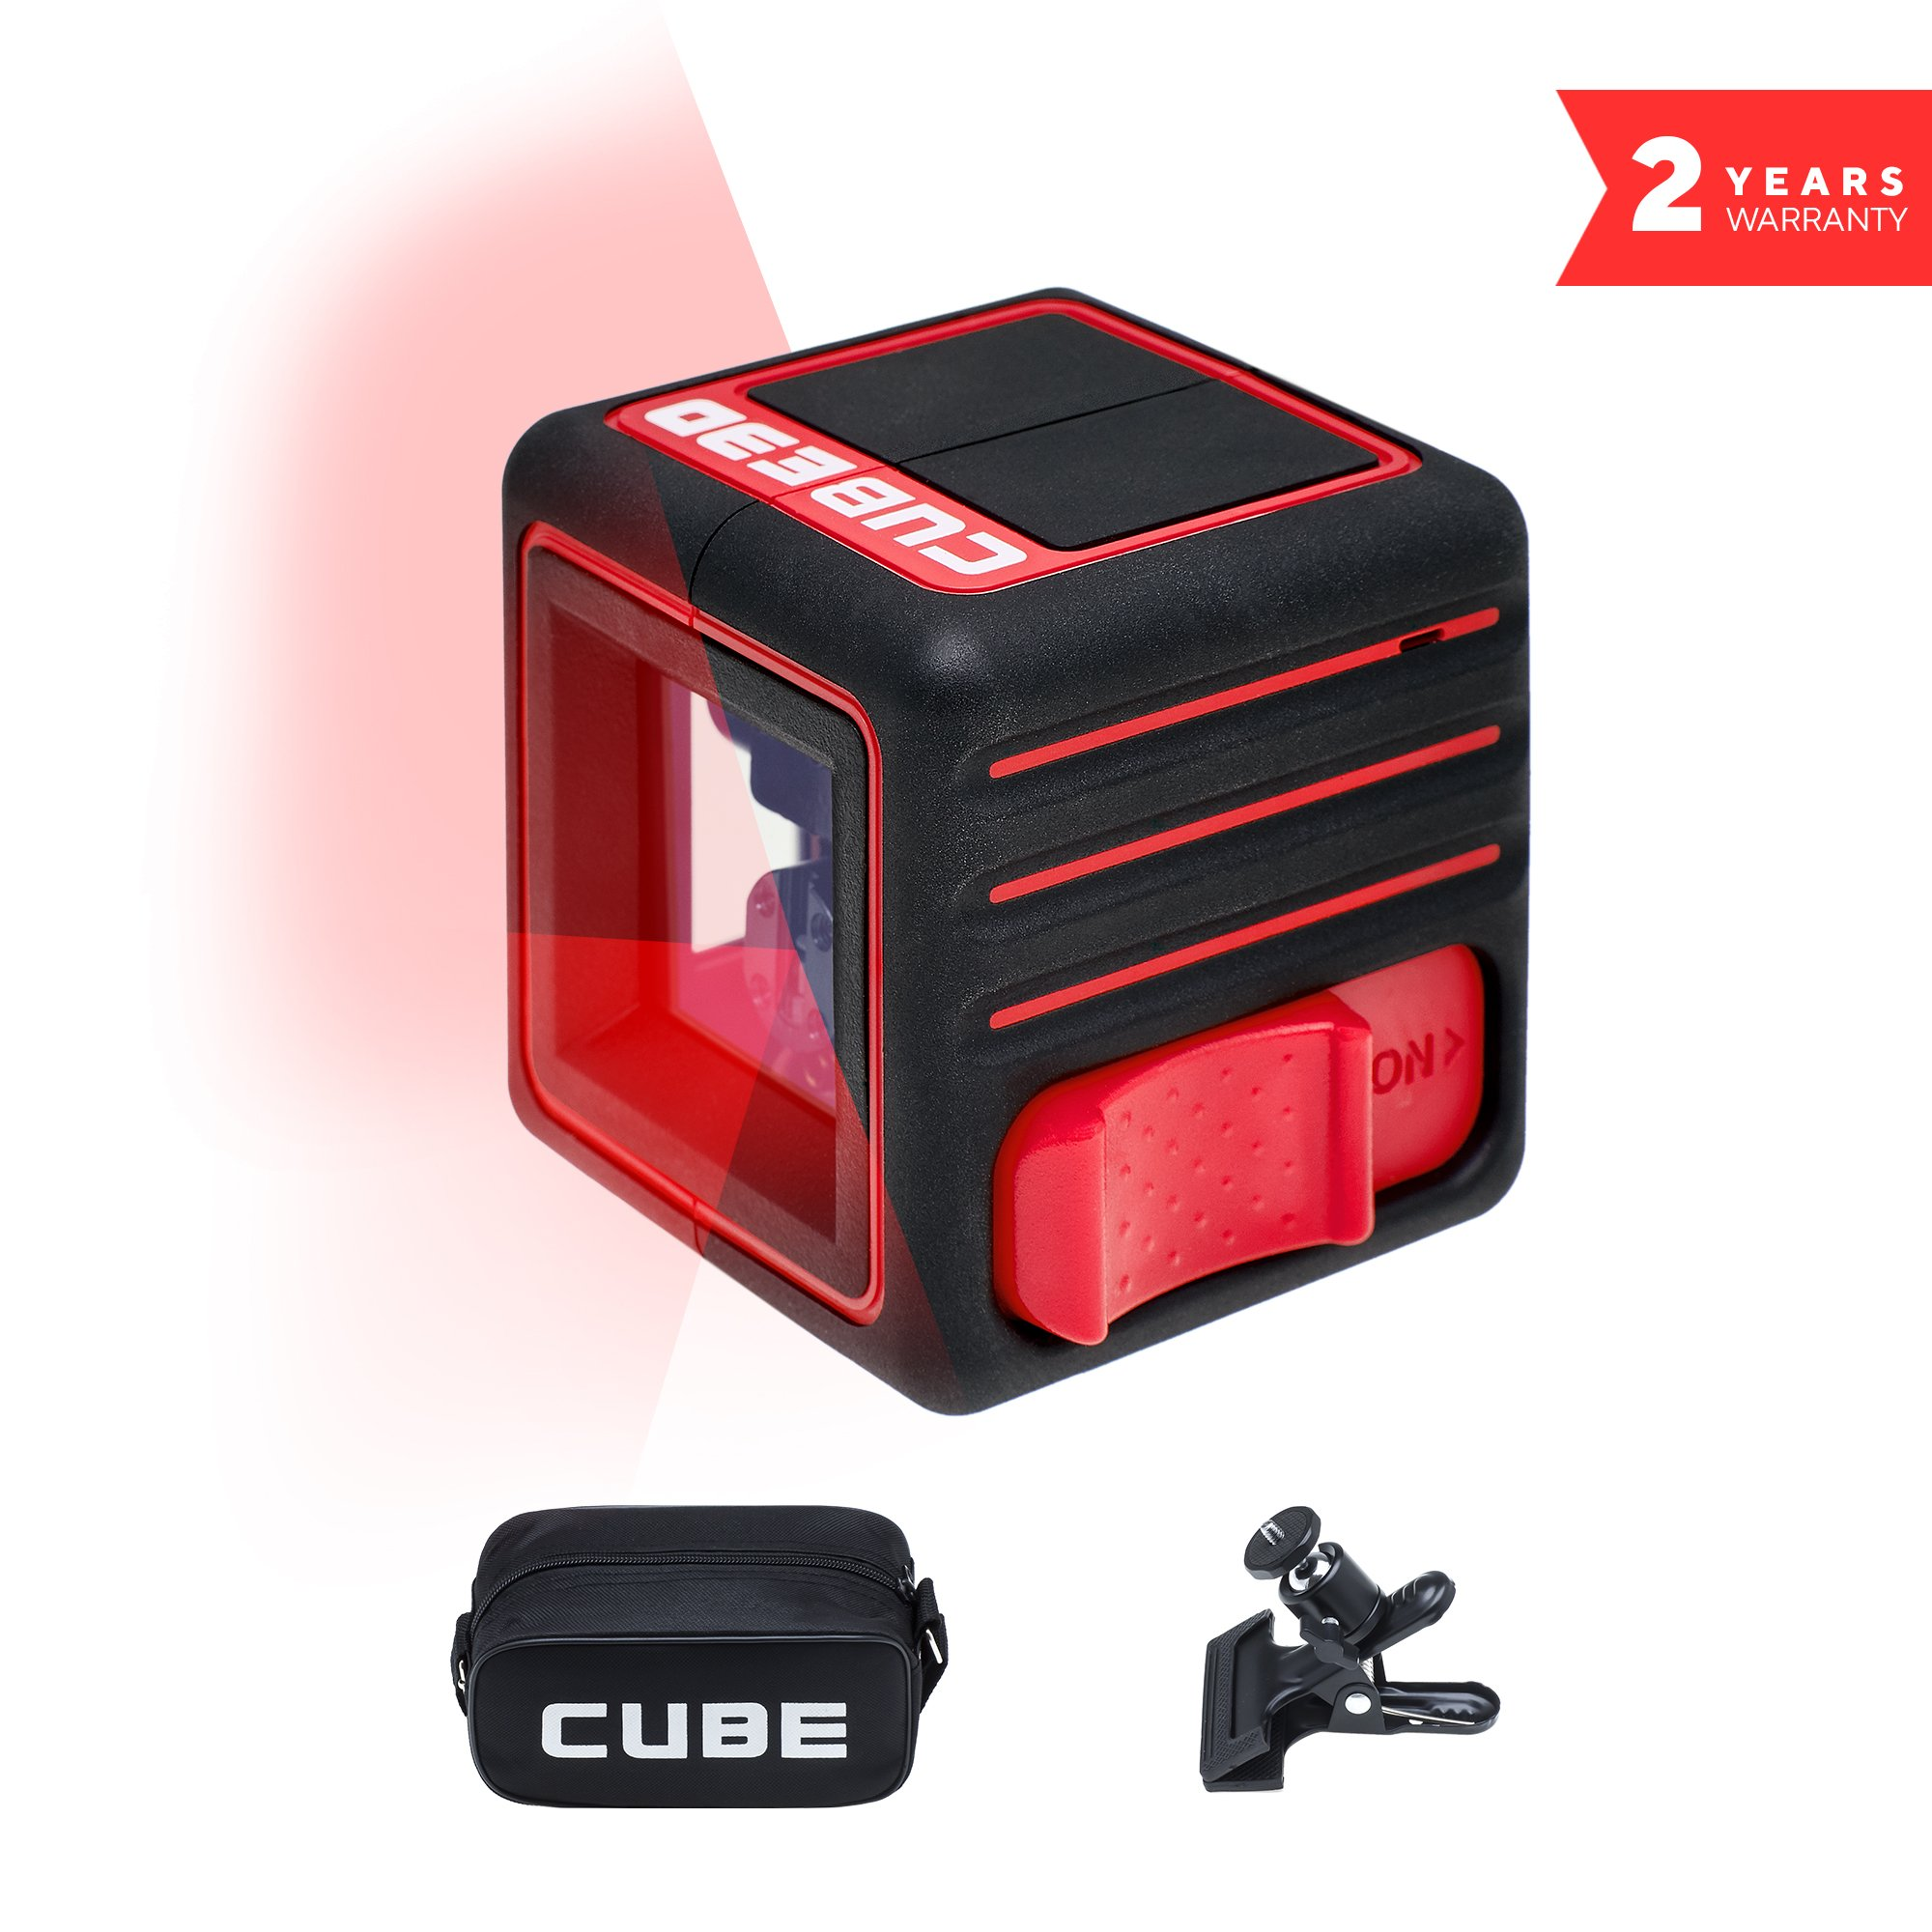 ADA Cube 3D Home Edition, Laser Level, Crossline Self-Leveling Laser Level Kit, 20 Meters (65 feet) One Horizontal and Two Vertical Lines. Carrying Pouch, Universal Mount and batteries included A00383